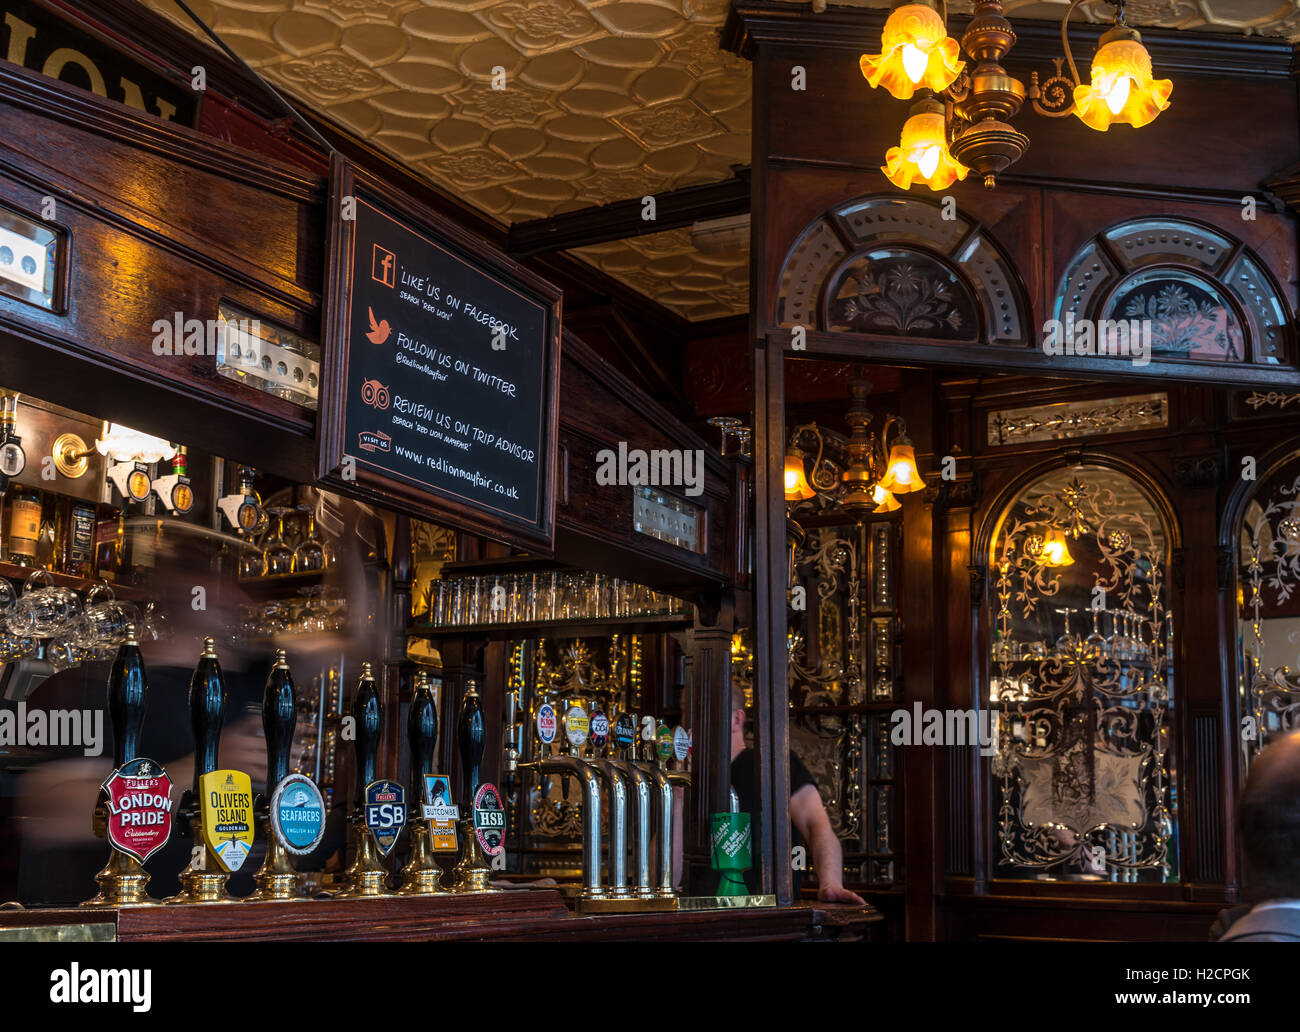 Interior of an old traditional London City Pub with dark wood paneling and cut glass mirrors and row of beer pumps - Stock Image